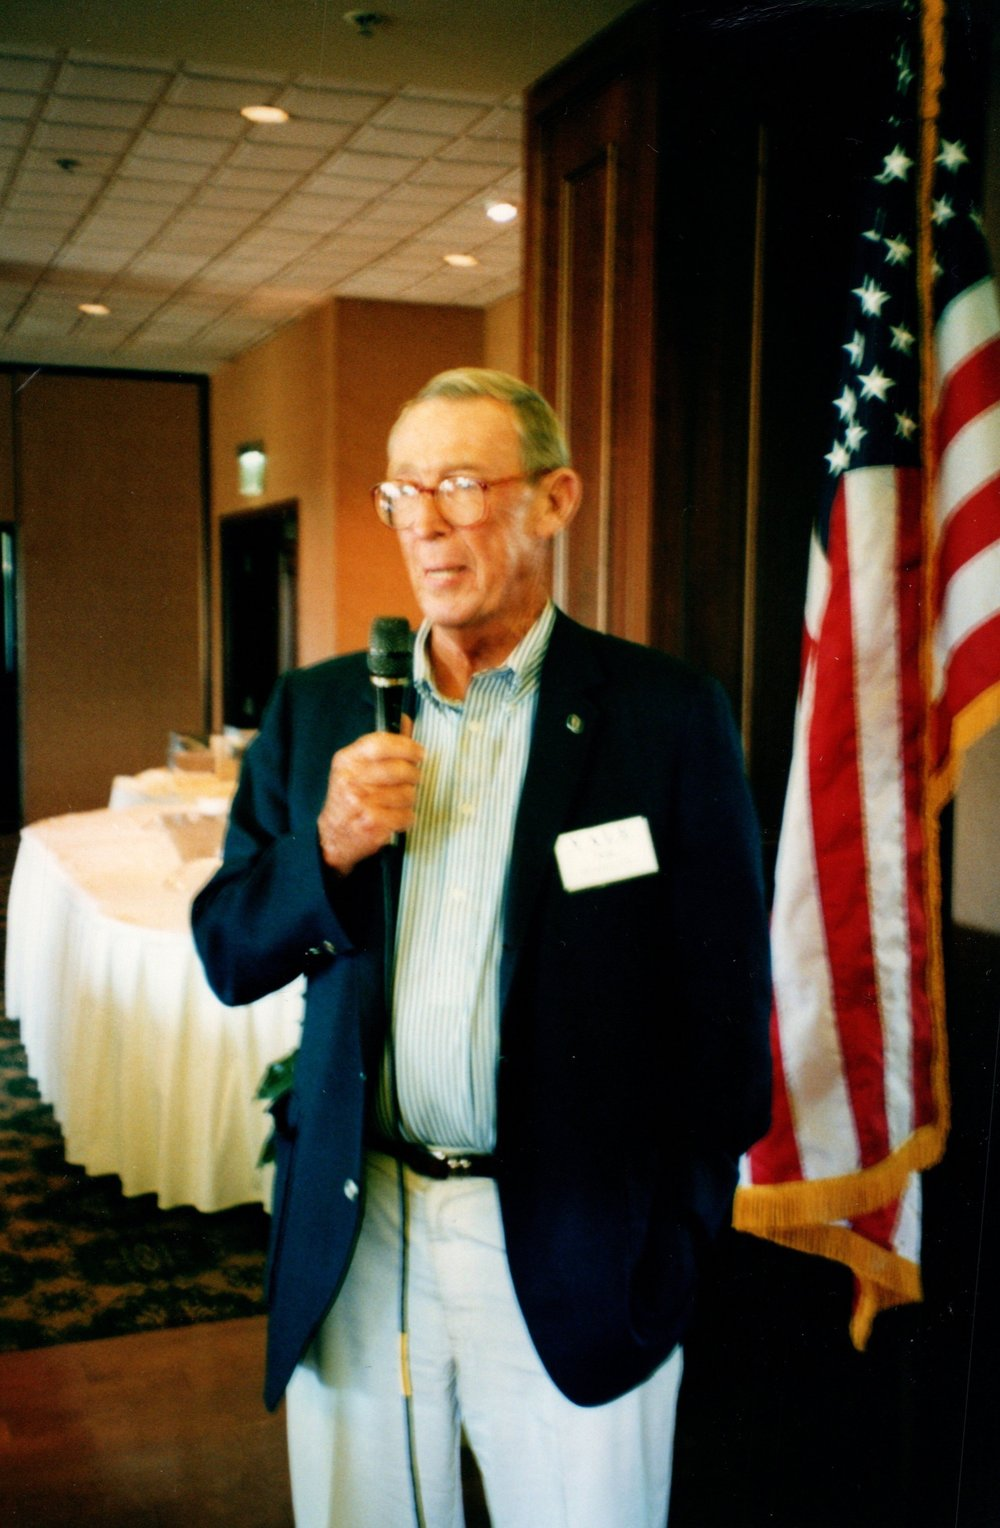 3_13_2003 - COACH SIEDLECKI LUNCHEON - VINEYARDS COUNTRY CLUB 1.jpg